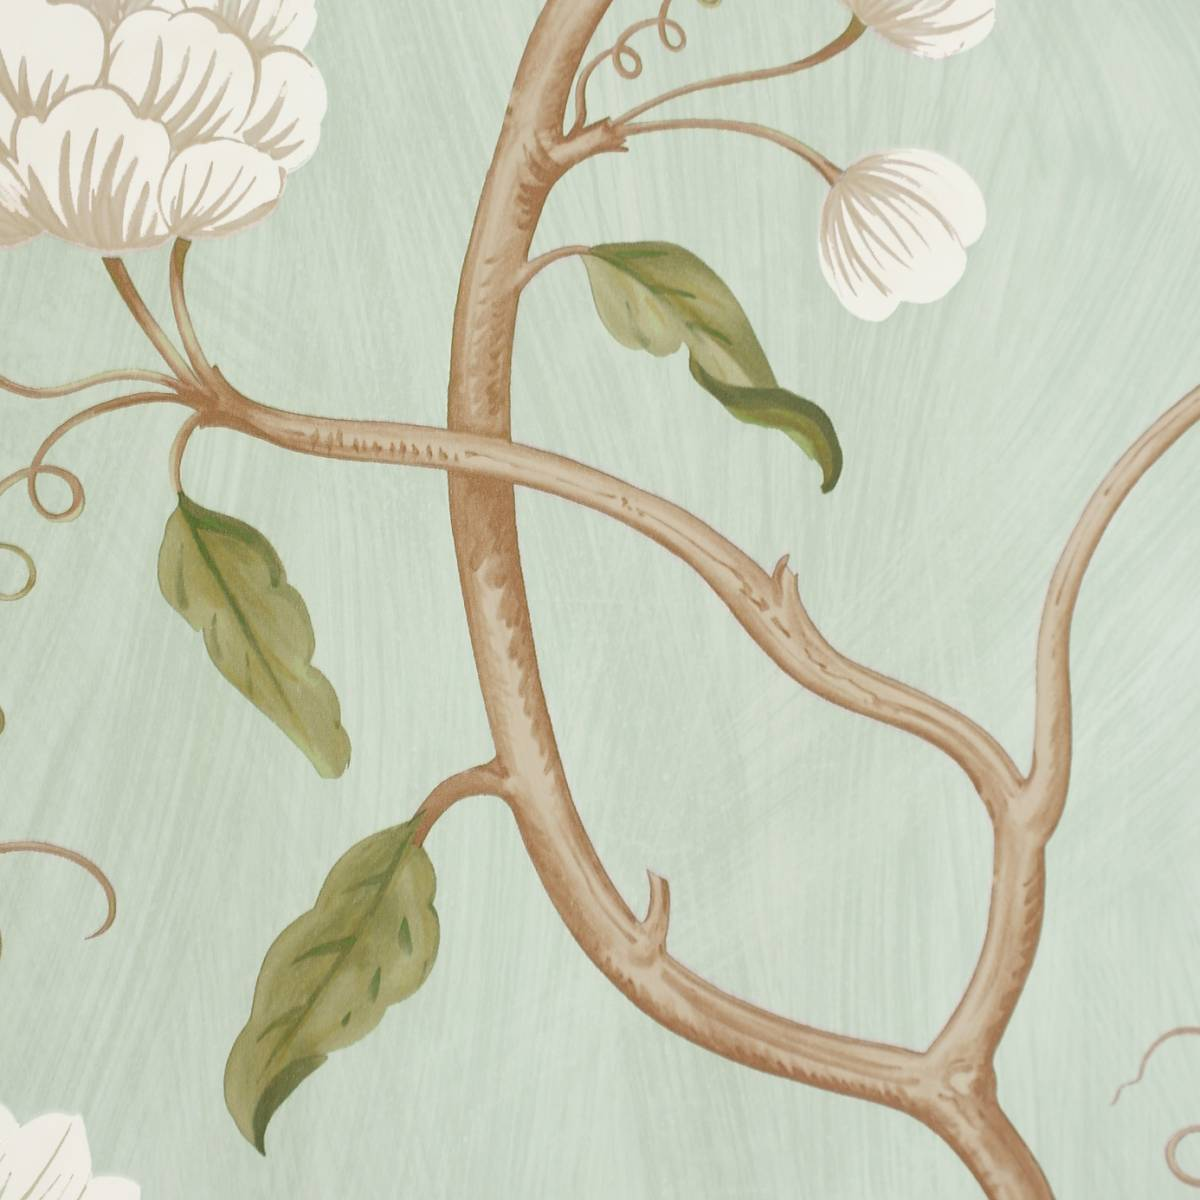 snow tree wallpaper aqua 07949 04 colefax fowler baptista wallpapers collection. Black Bedroom Furniture Sets. Home Design Ideas